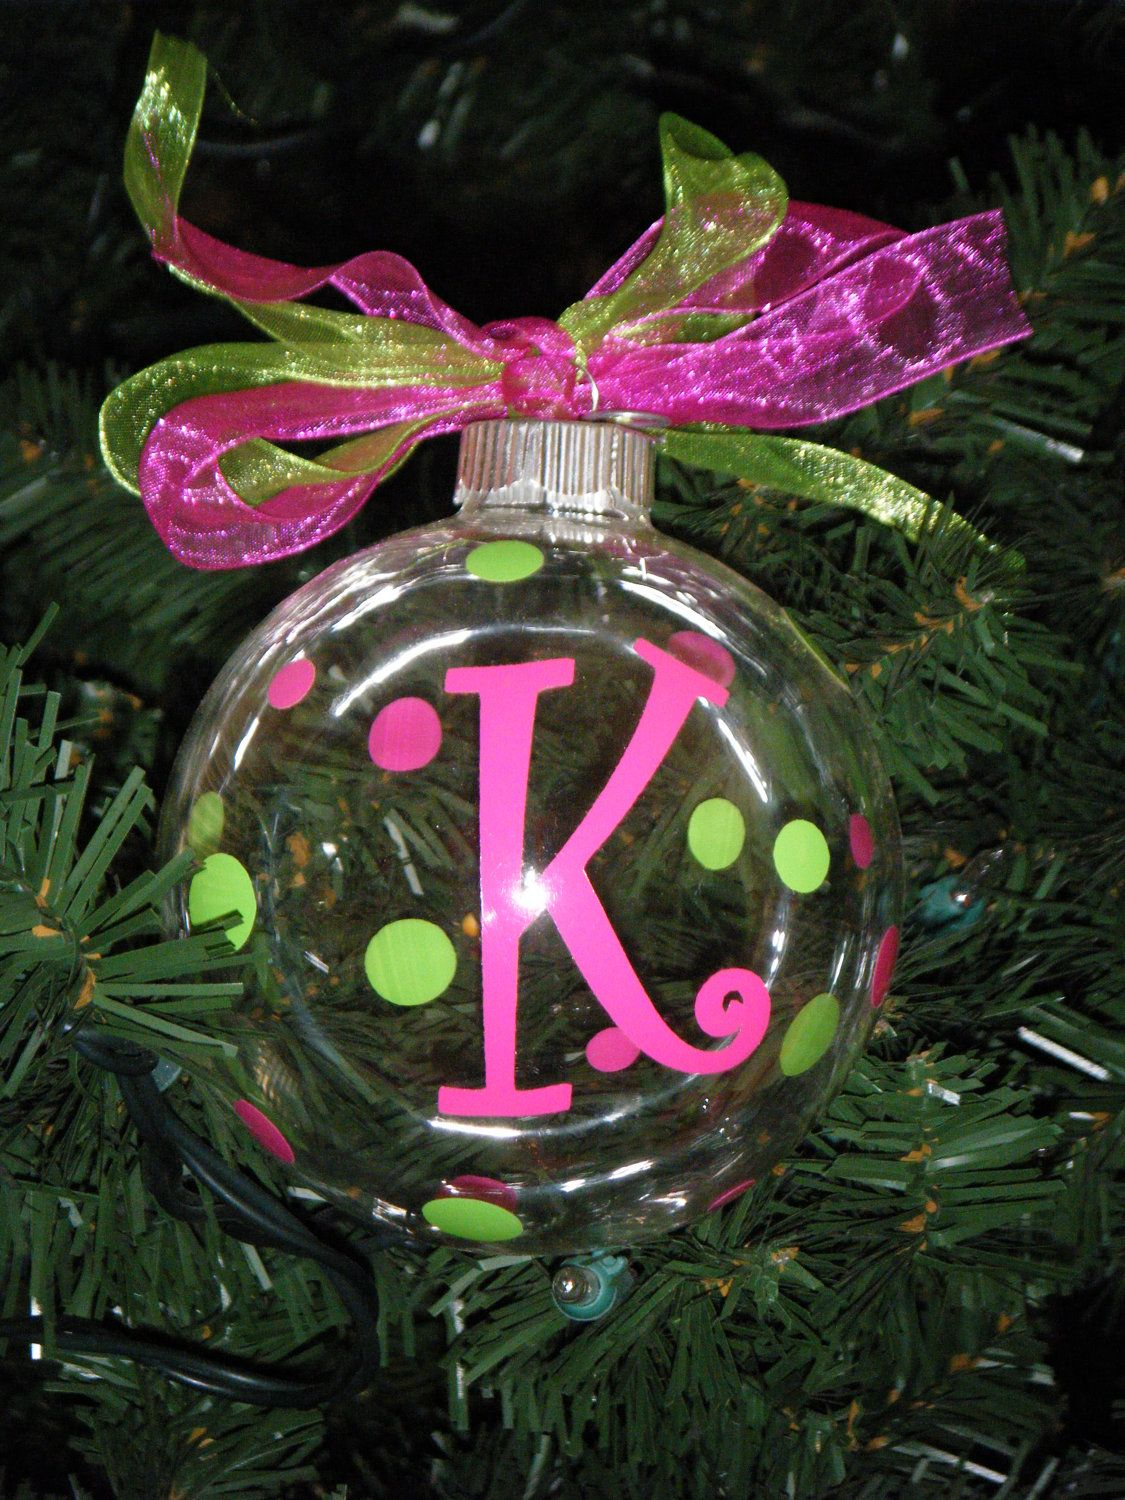 Christmas Ornaments With Names On Them.Personalized Christmas Ornaments 8 00 Via Etsy Or Make